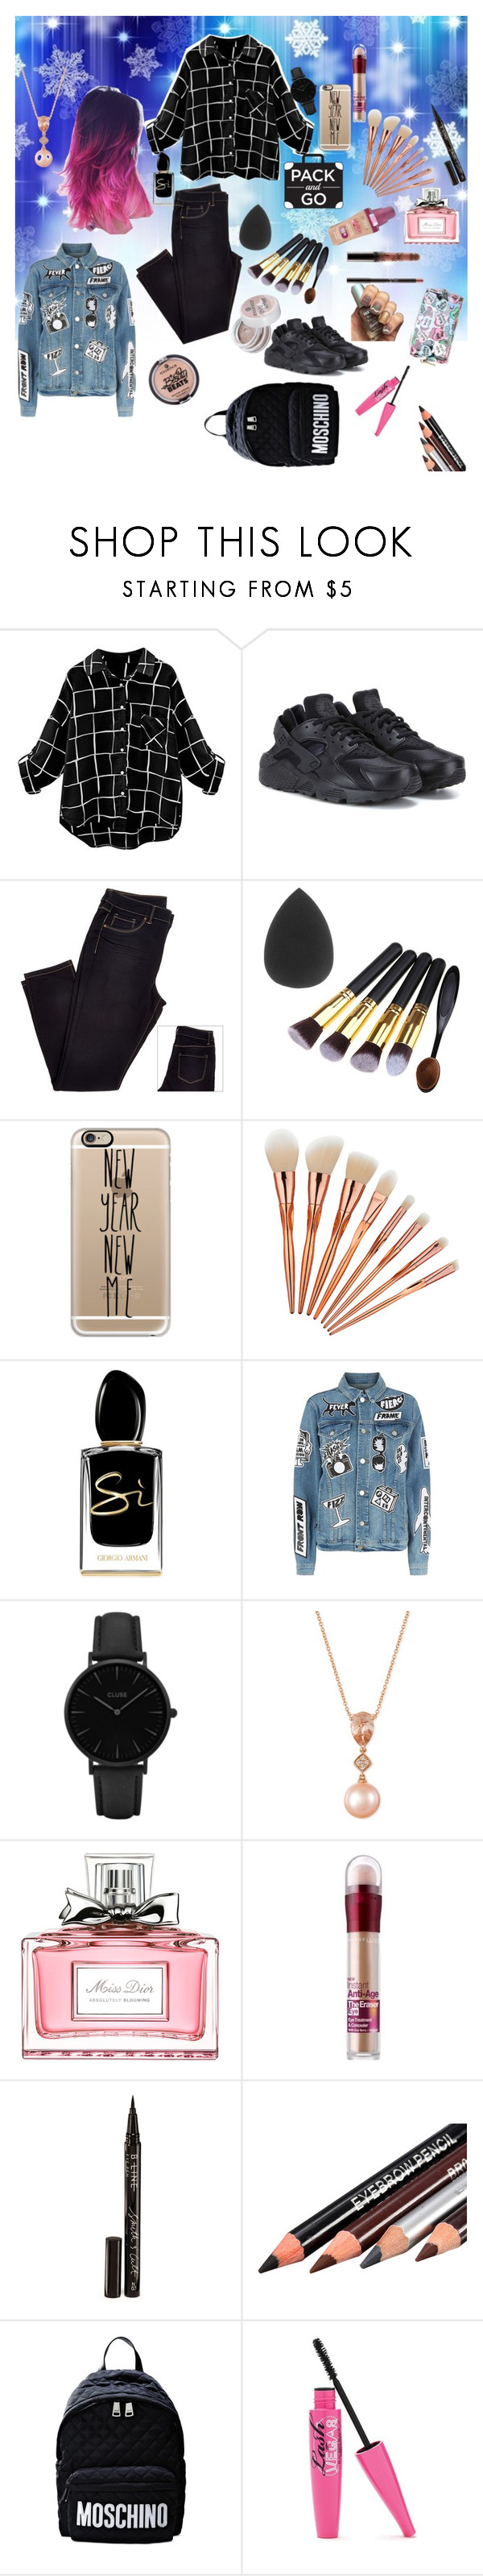 """Untitled #113"" by vittoriapeverani ❤ liked on Polyvore featuring NIKE, Casetify, Giorgio Armani, Frame, CLUSE, LE VIAN, Christian Dior, Maybelline, Smith & Cult and Moschino"